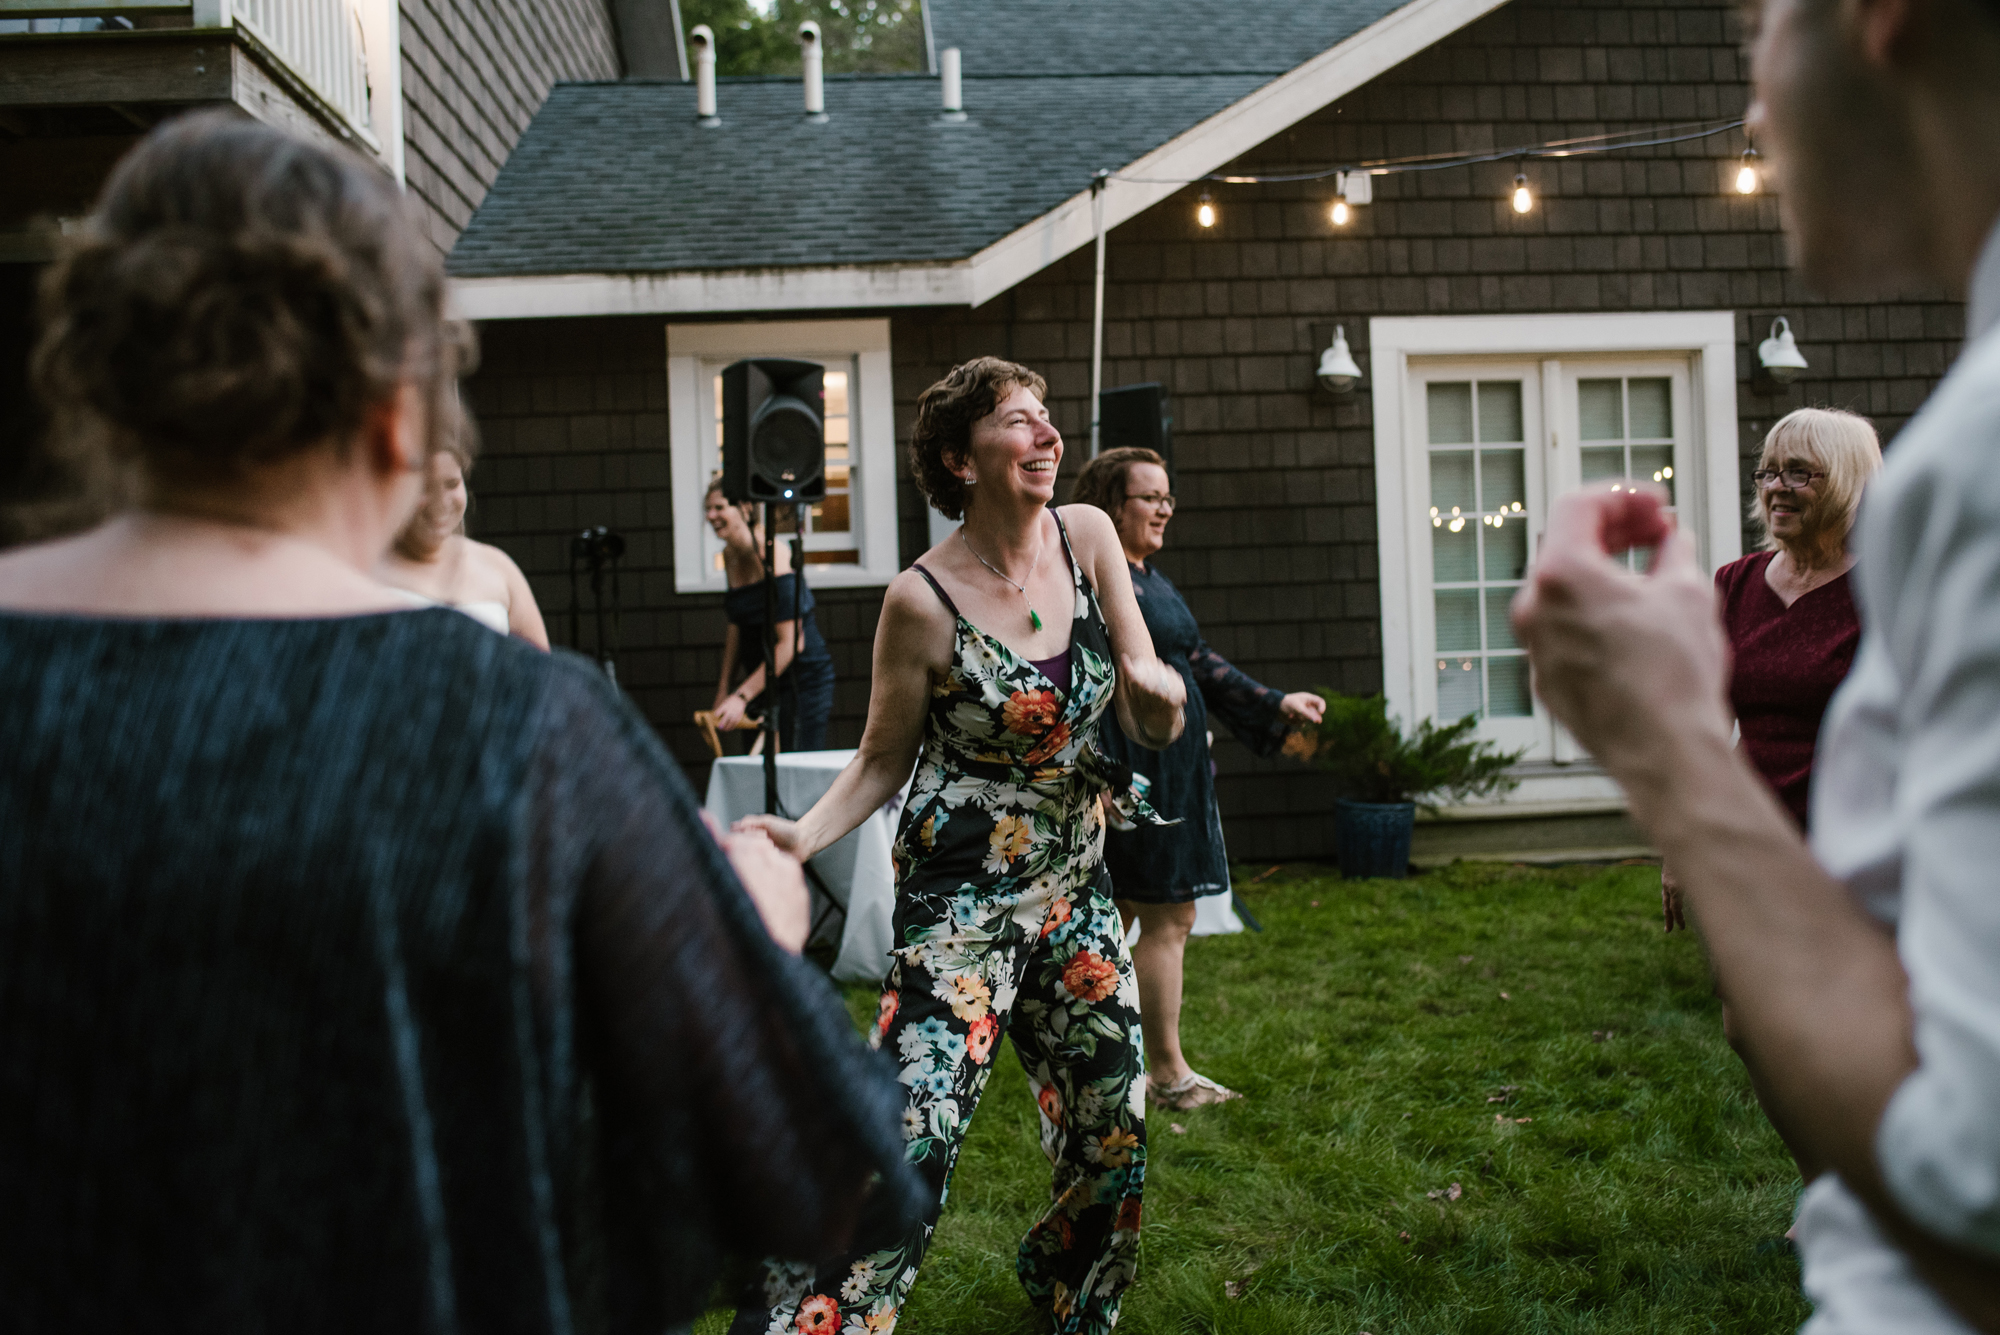 sawyer-michigan-backyard-wedding-dancing-pictures-sydney-marie (14).jpg